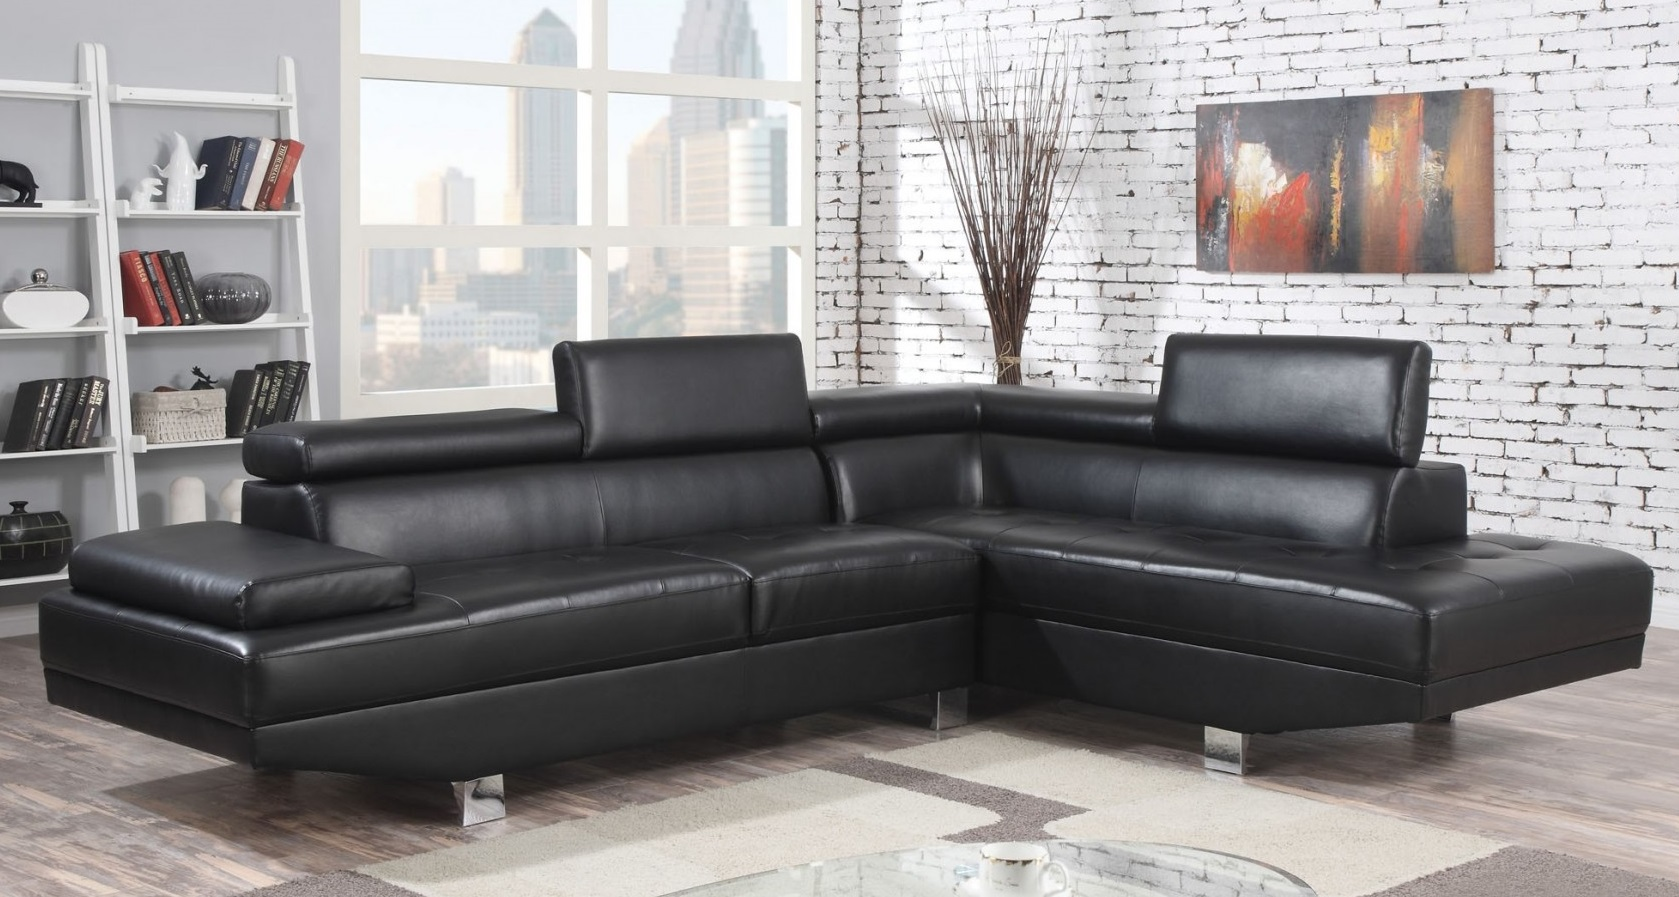 connor sectional with left facing sofa right facing chaise adjustable headrest pu leather upholstery tight